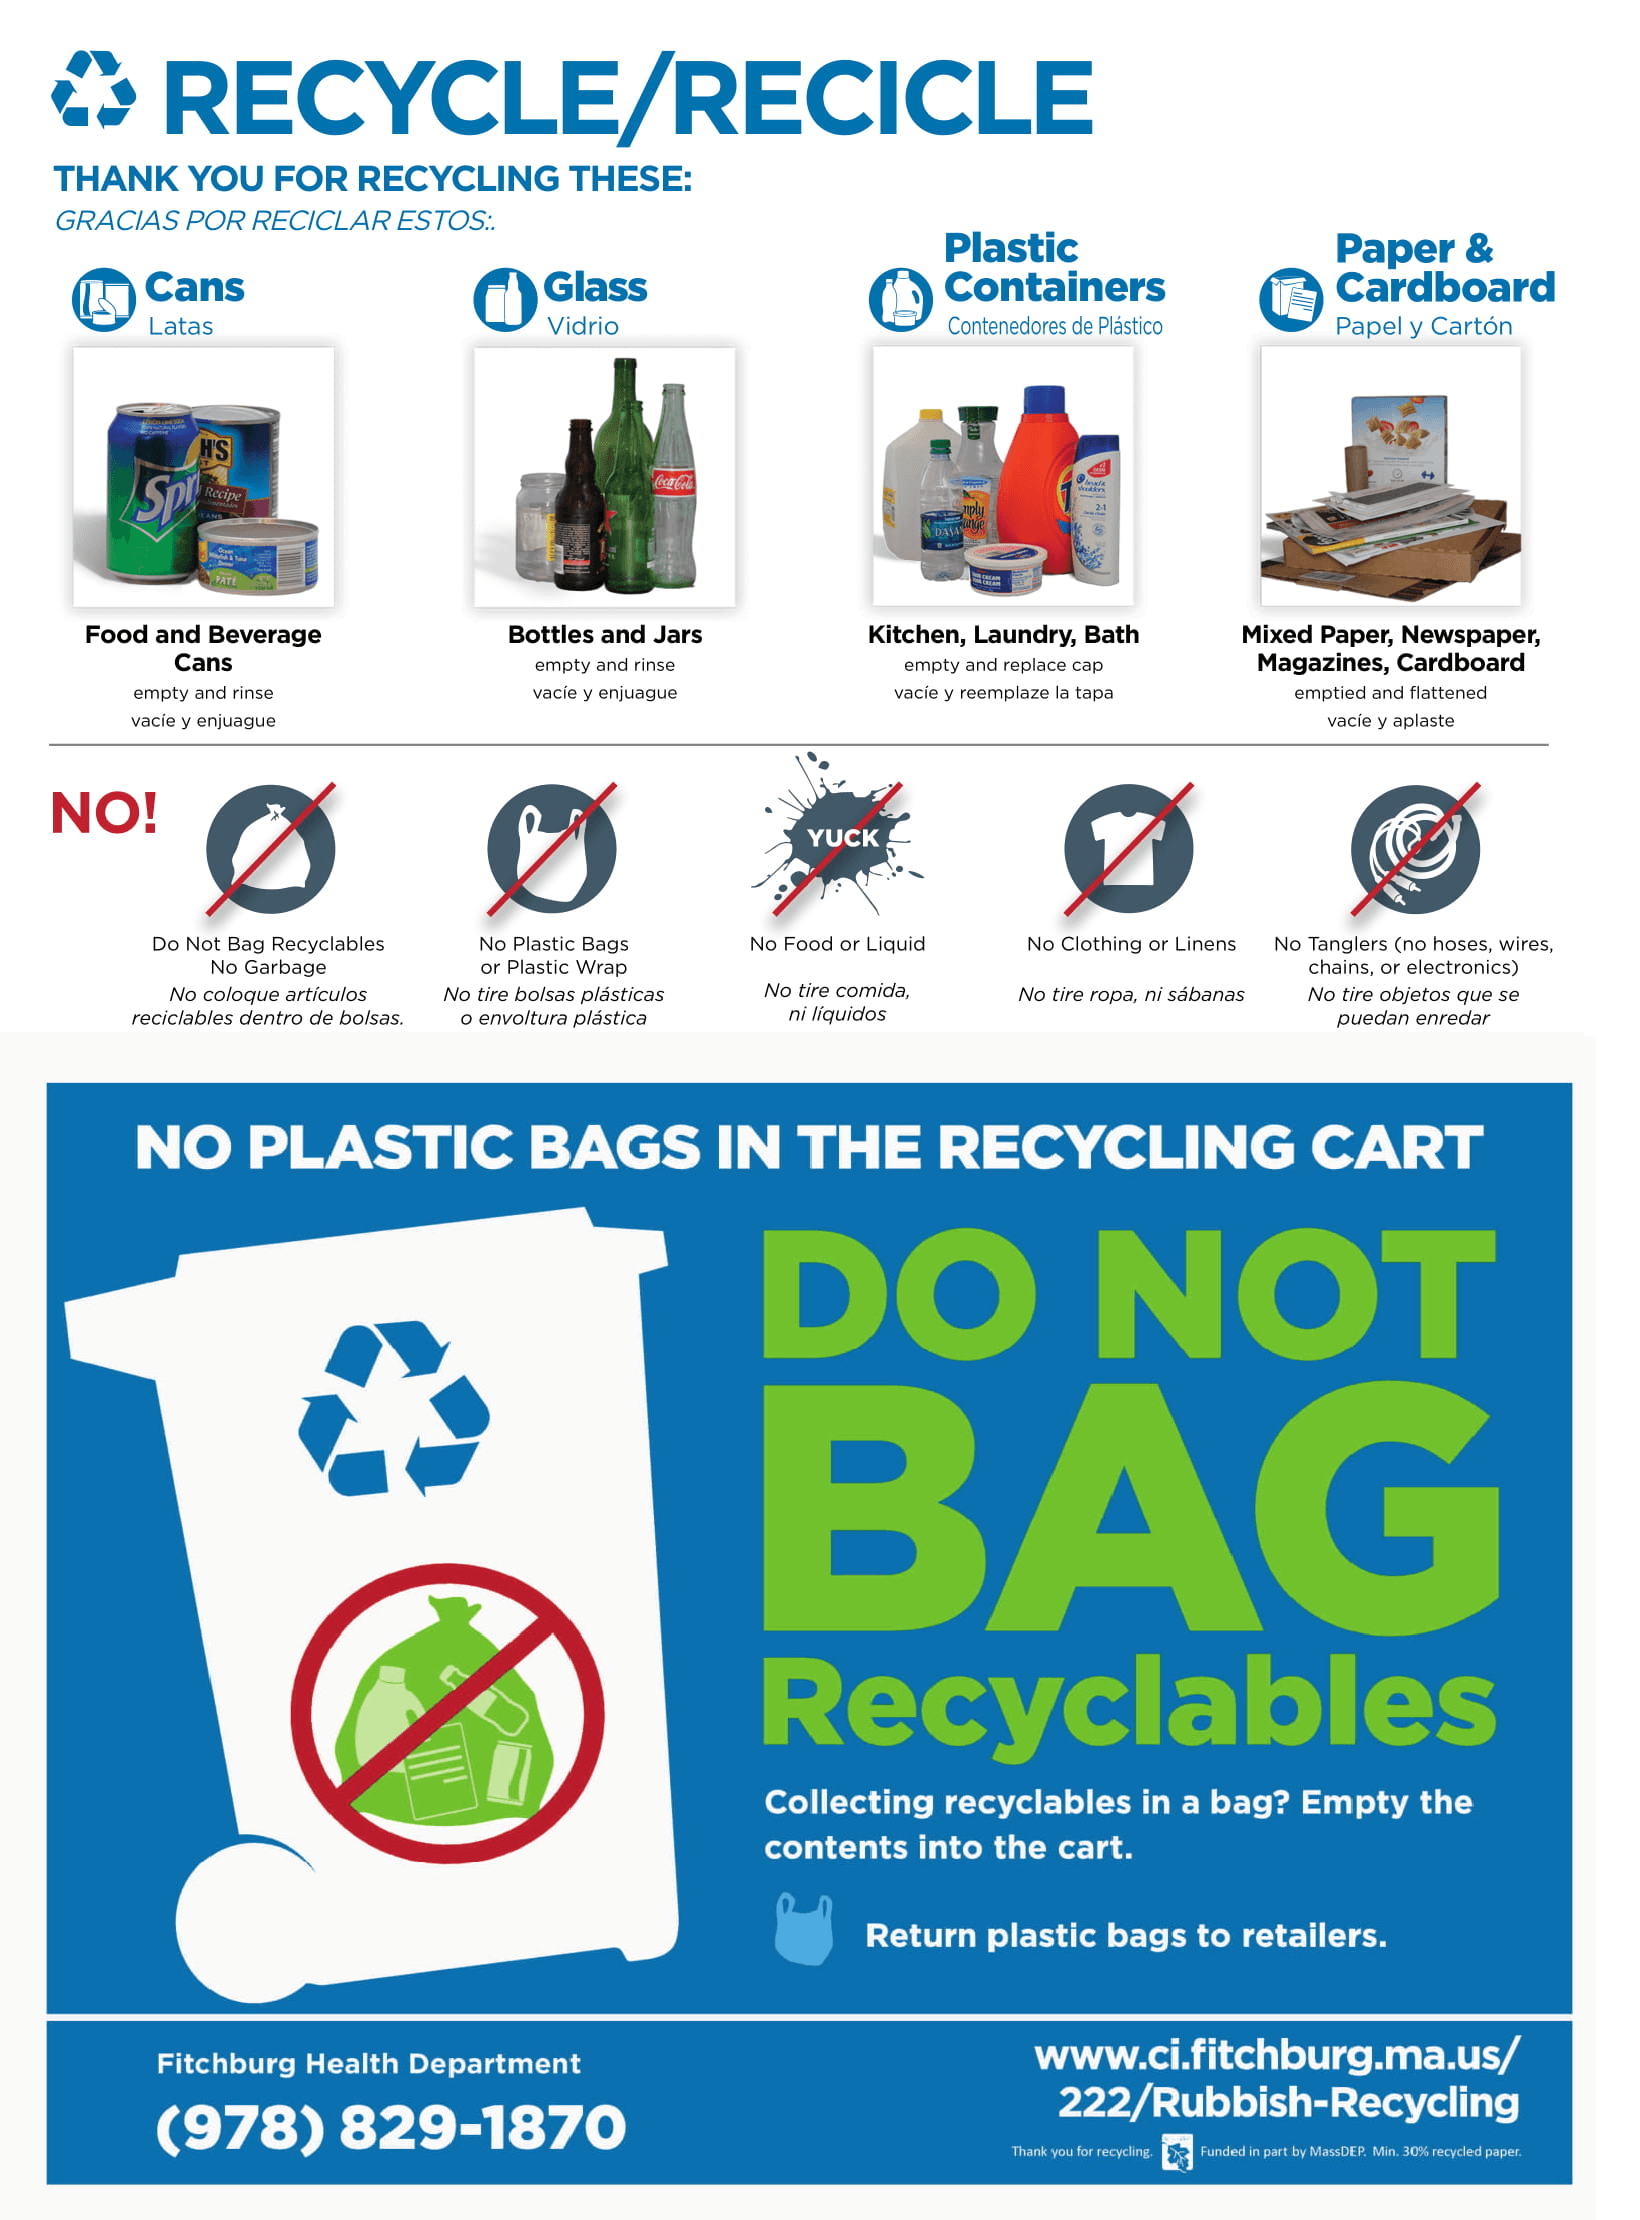 Proper Recycling Guidelines